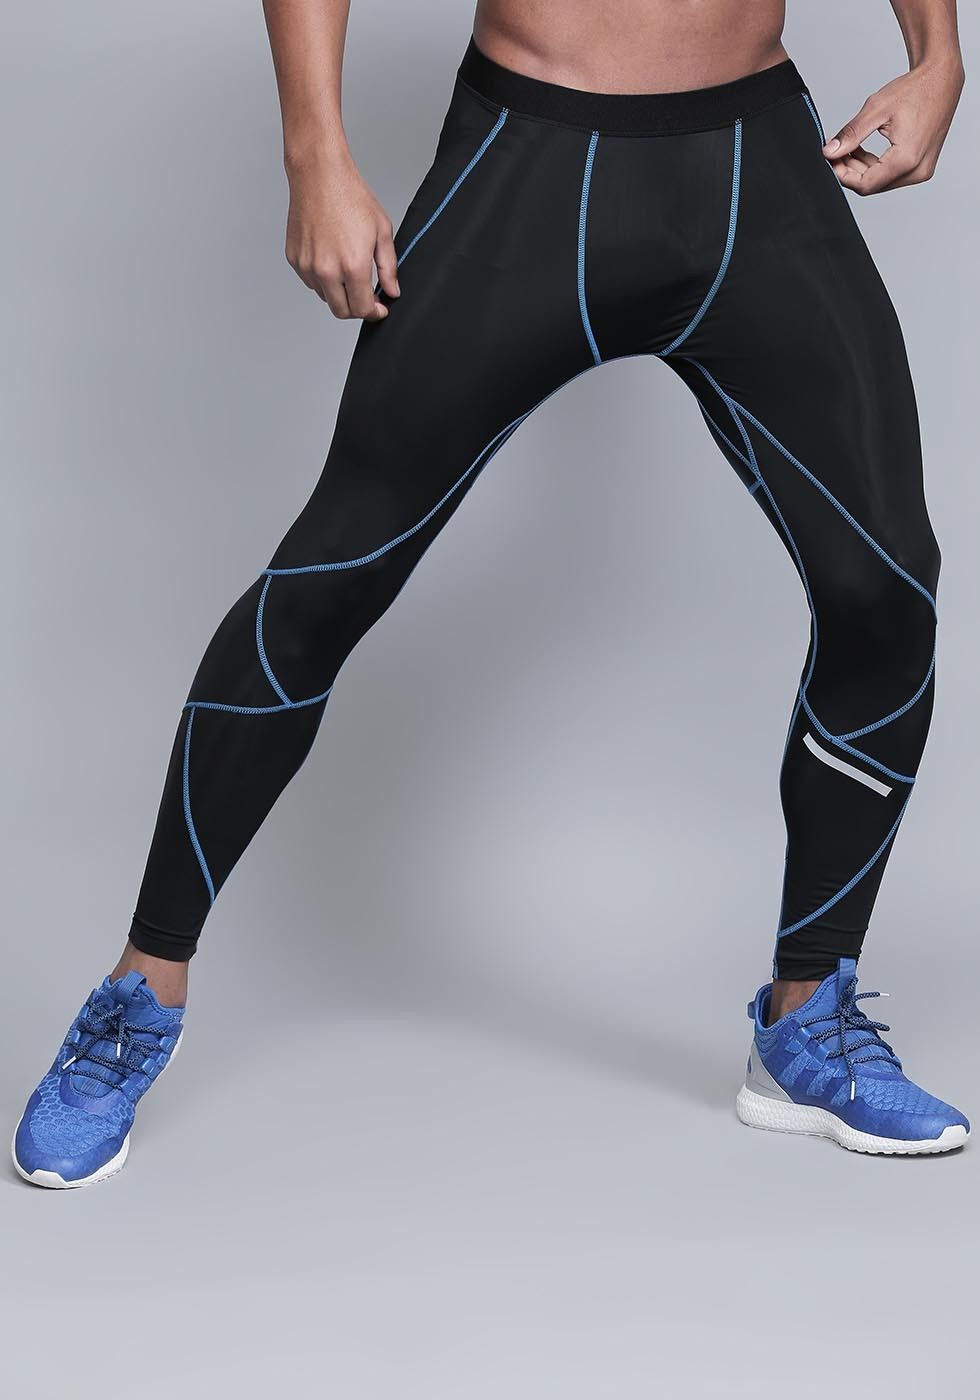 131aba48db26a INTENSE WORKOUT PERFORMANCE ACTIVEWEAR TIGHTS BY PROWL ₹2,499.00 ...